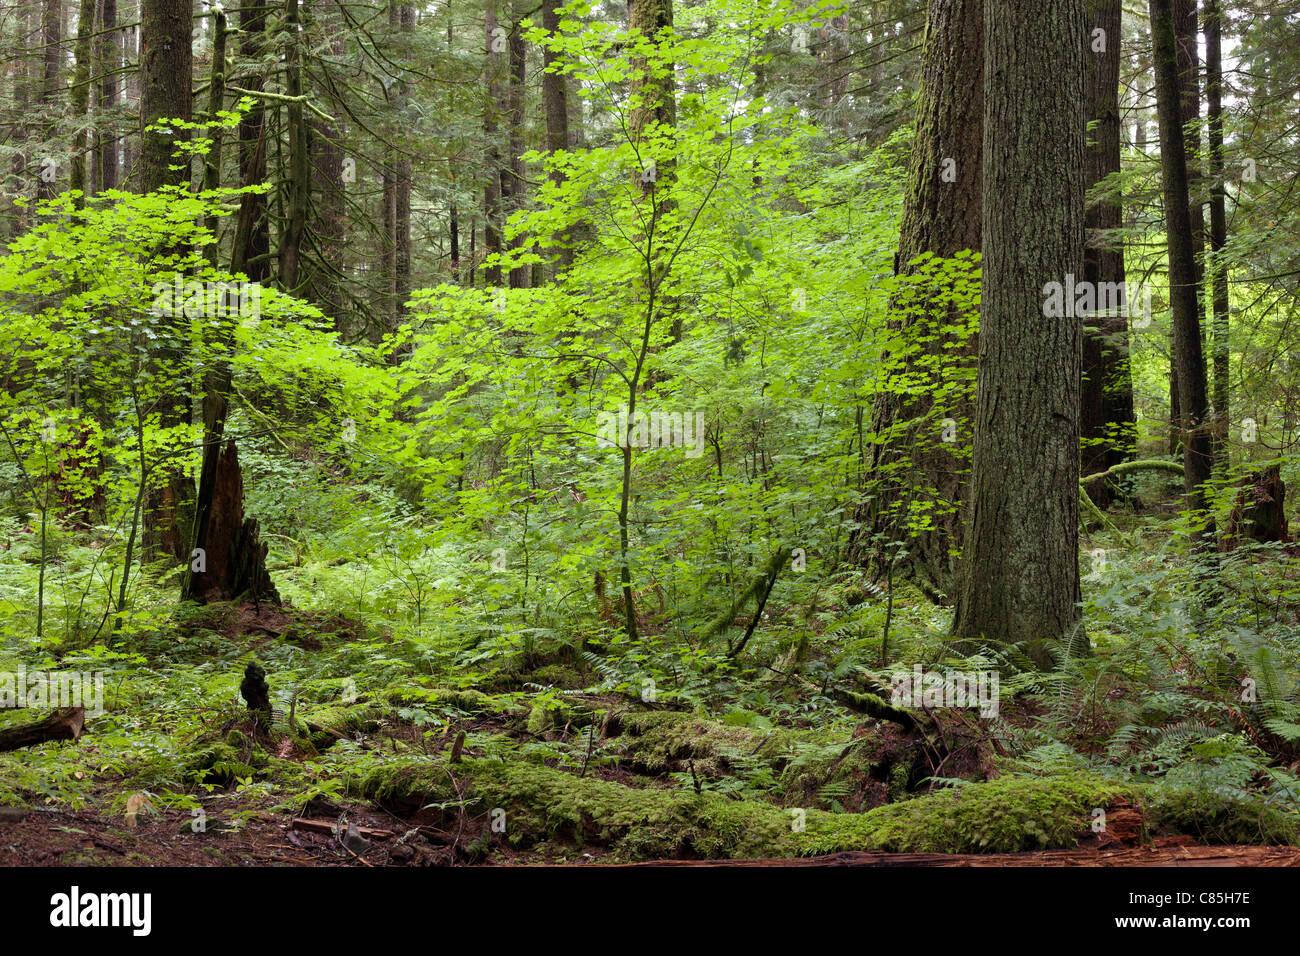 Virgin forest with high trees - Stock Image